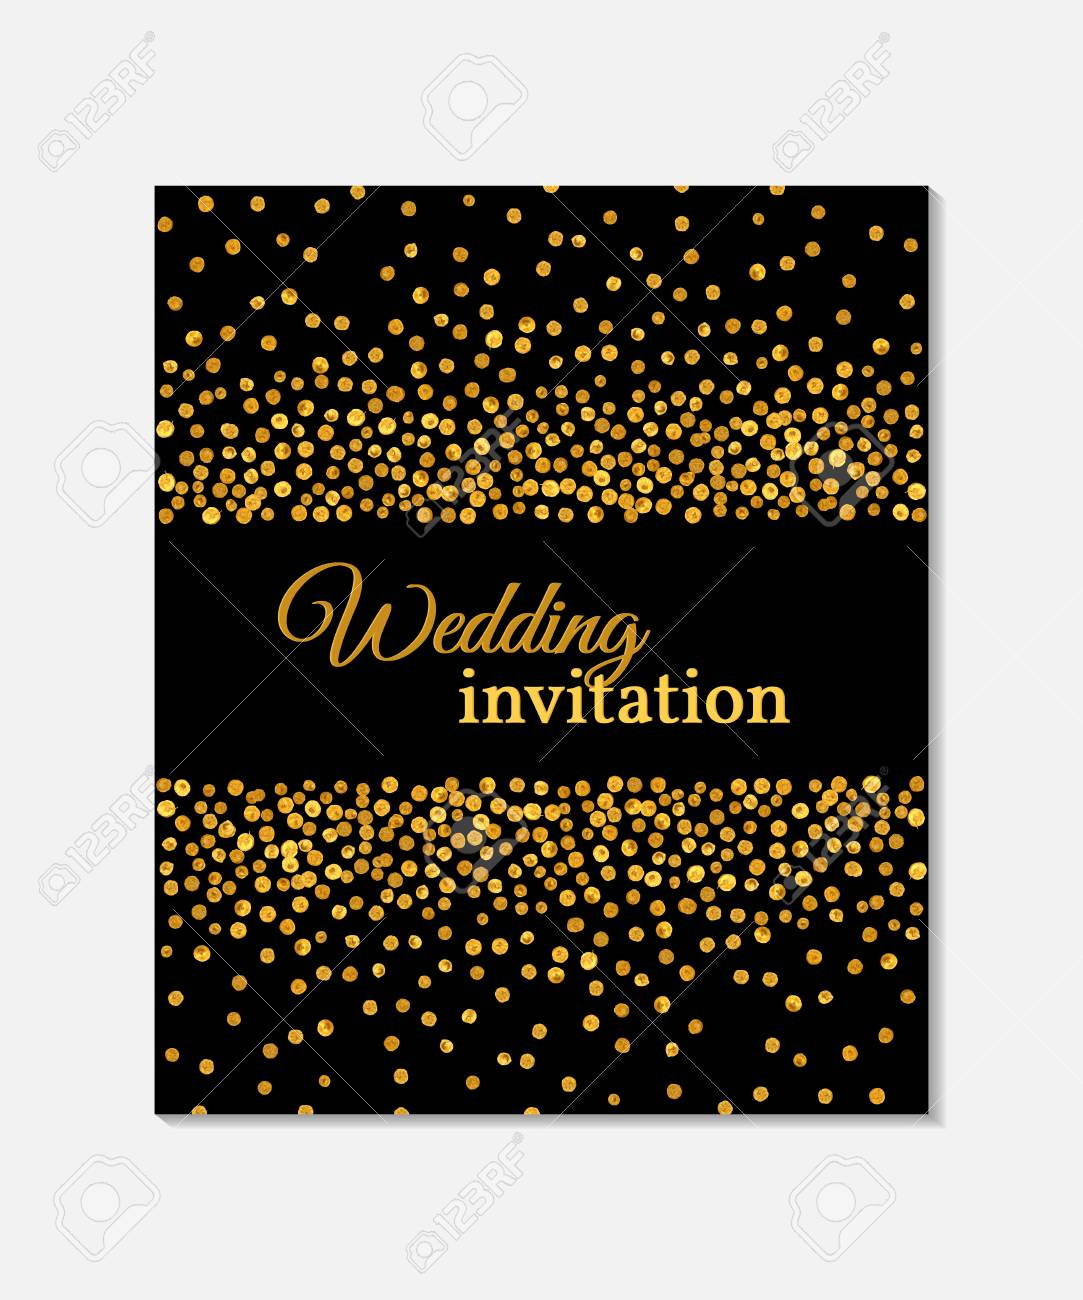 wedding invitation card with falling golden dots on black background